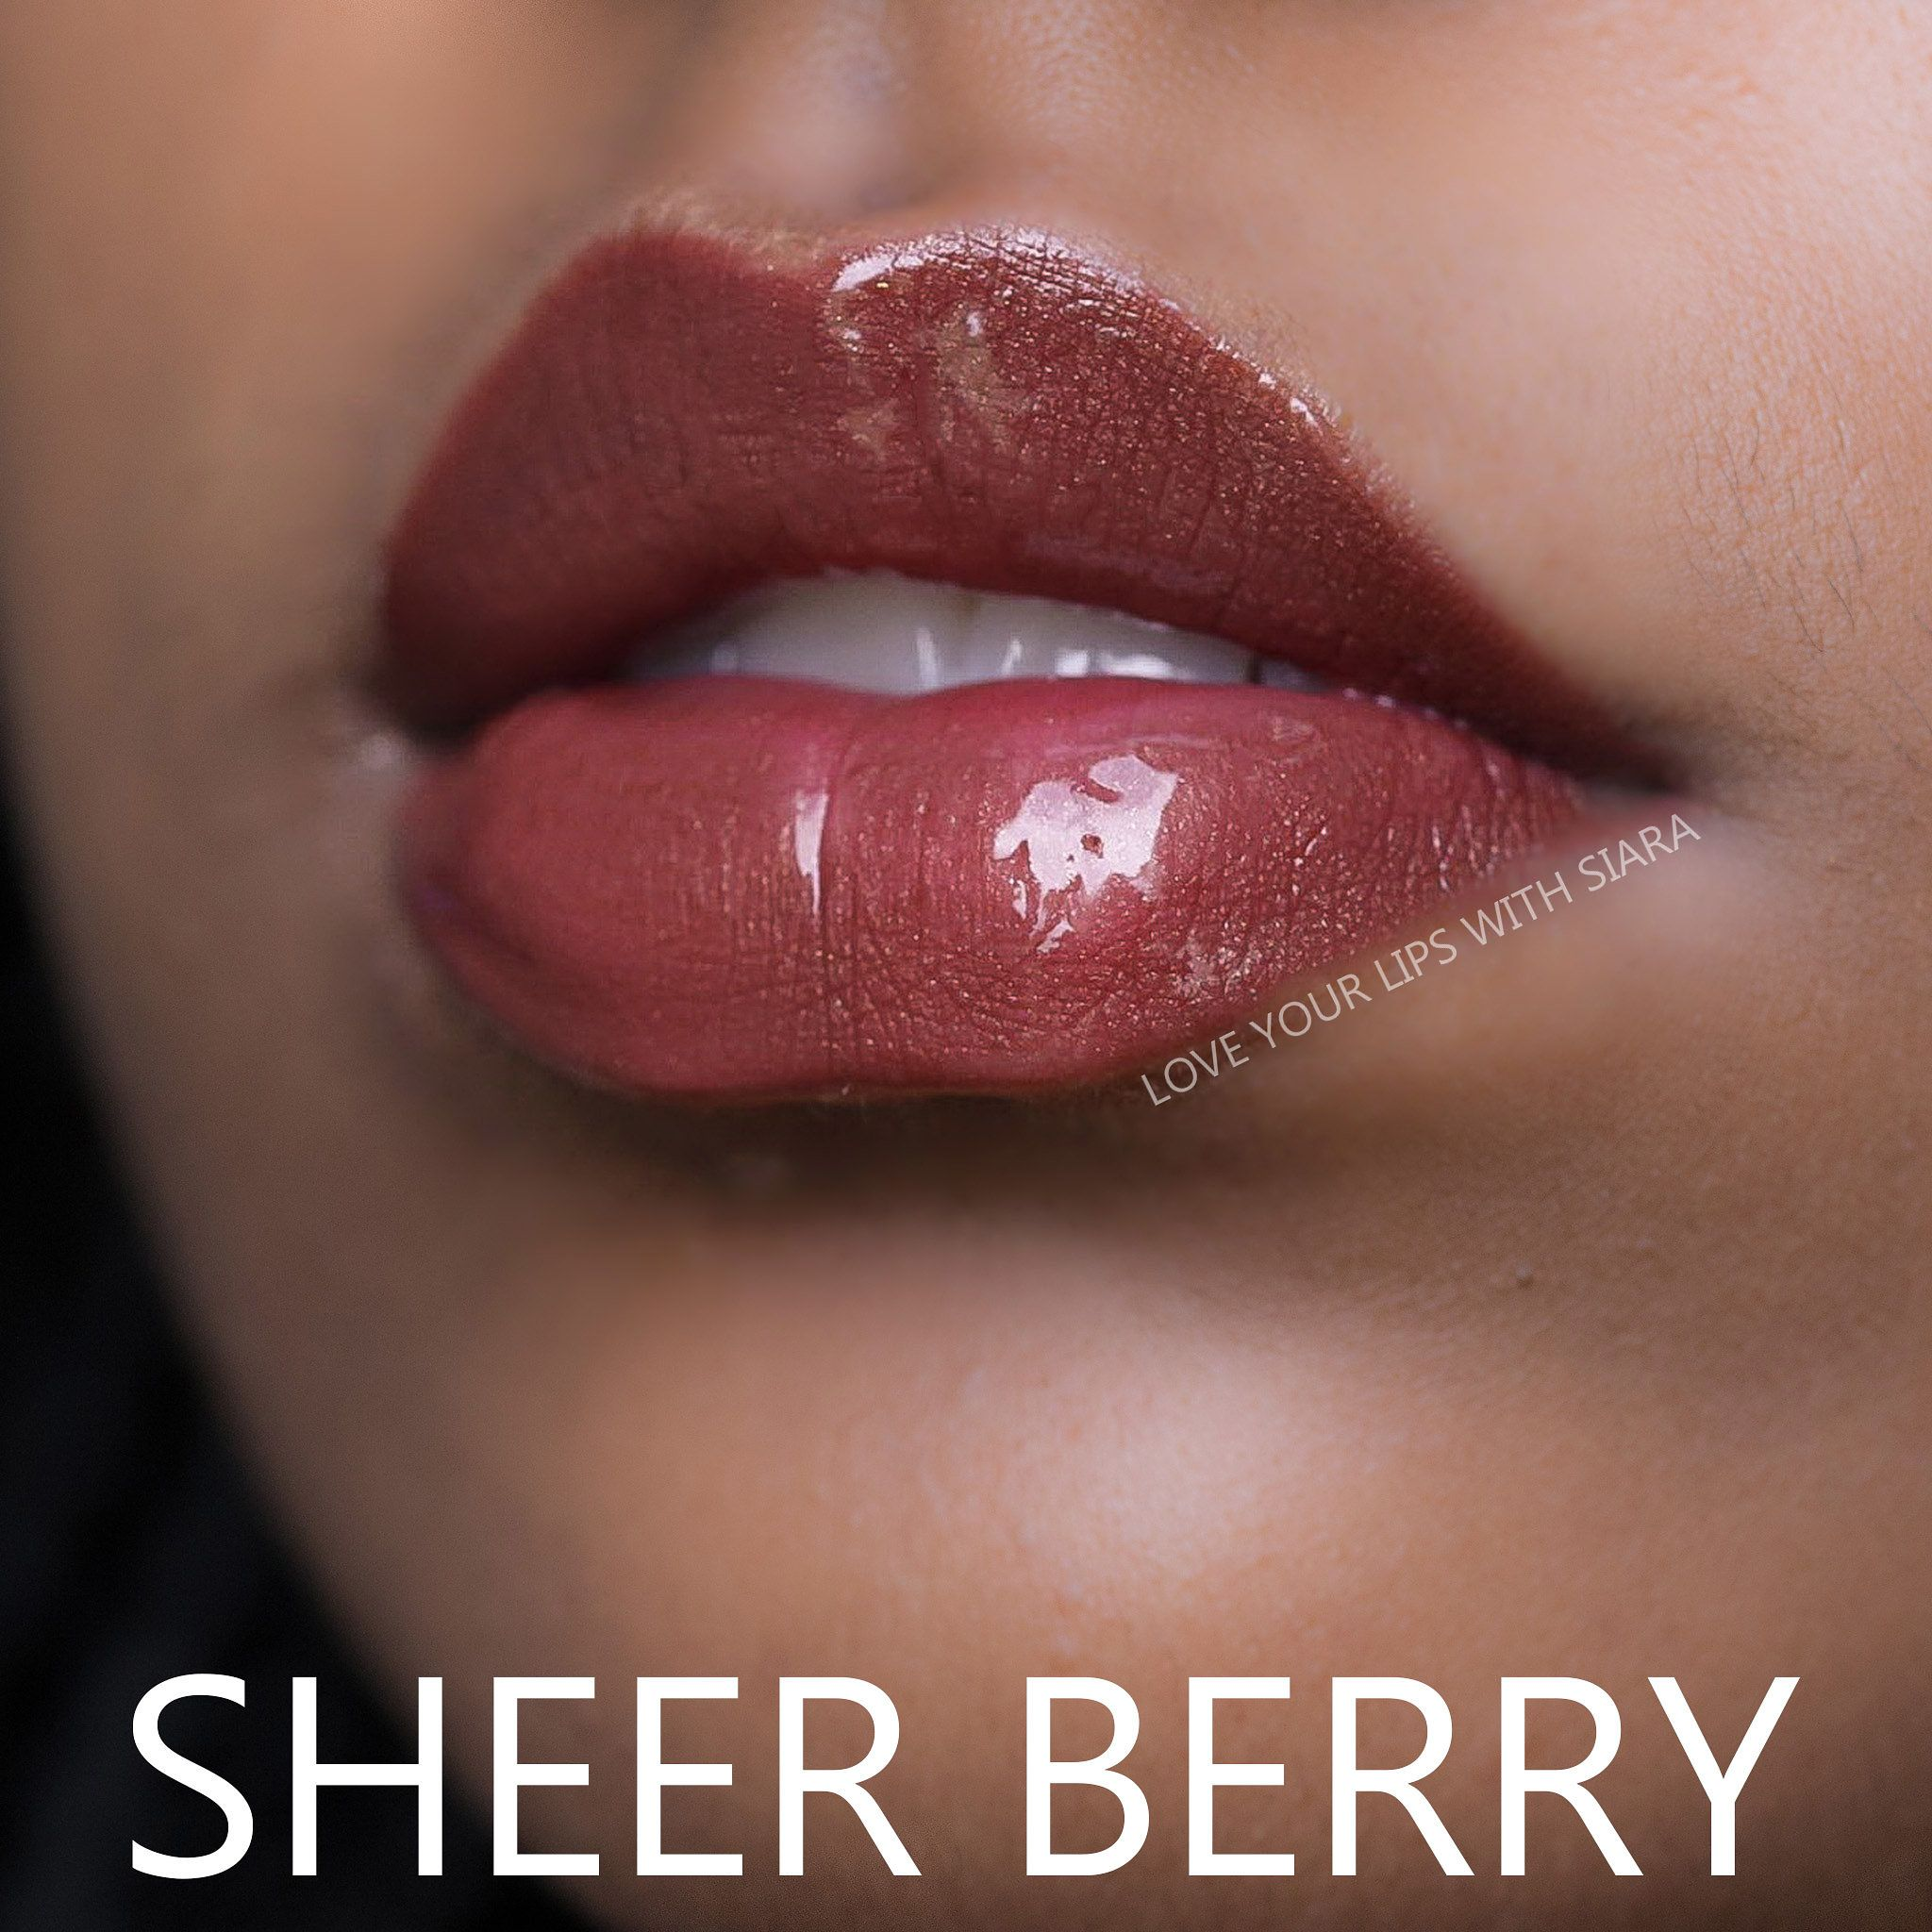 Sheer Berry W Glossy Gloss Lipsense Colors Lips